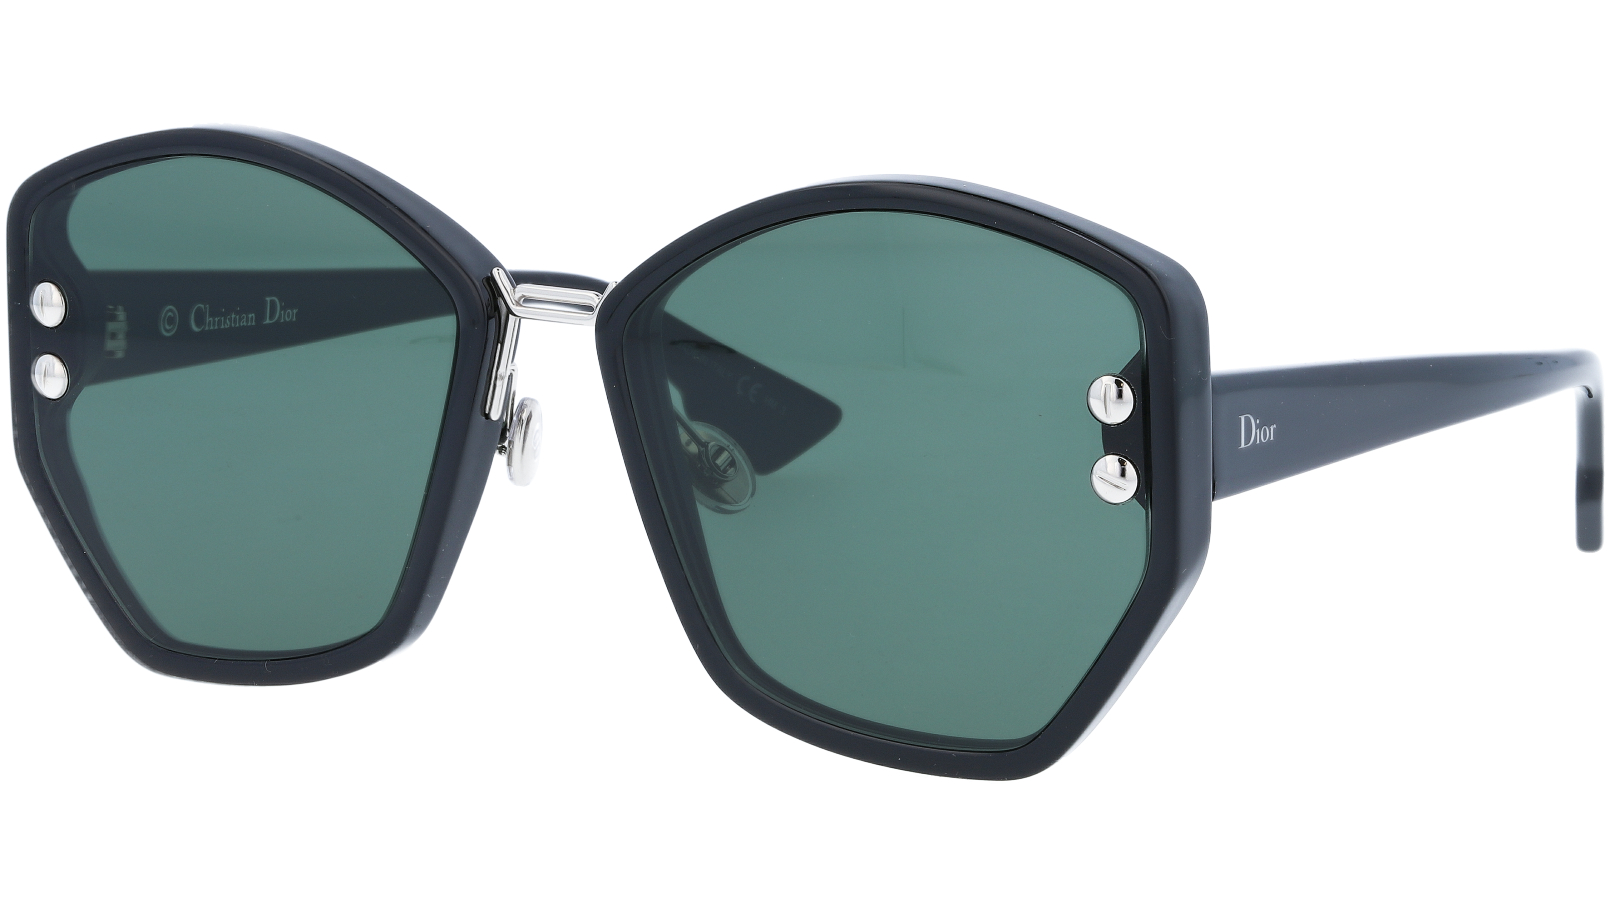 DIOR DIORADDICT2 80707 59 BLACK Sunglasses